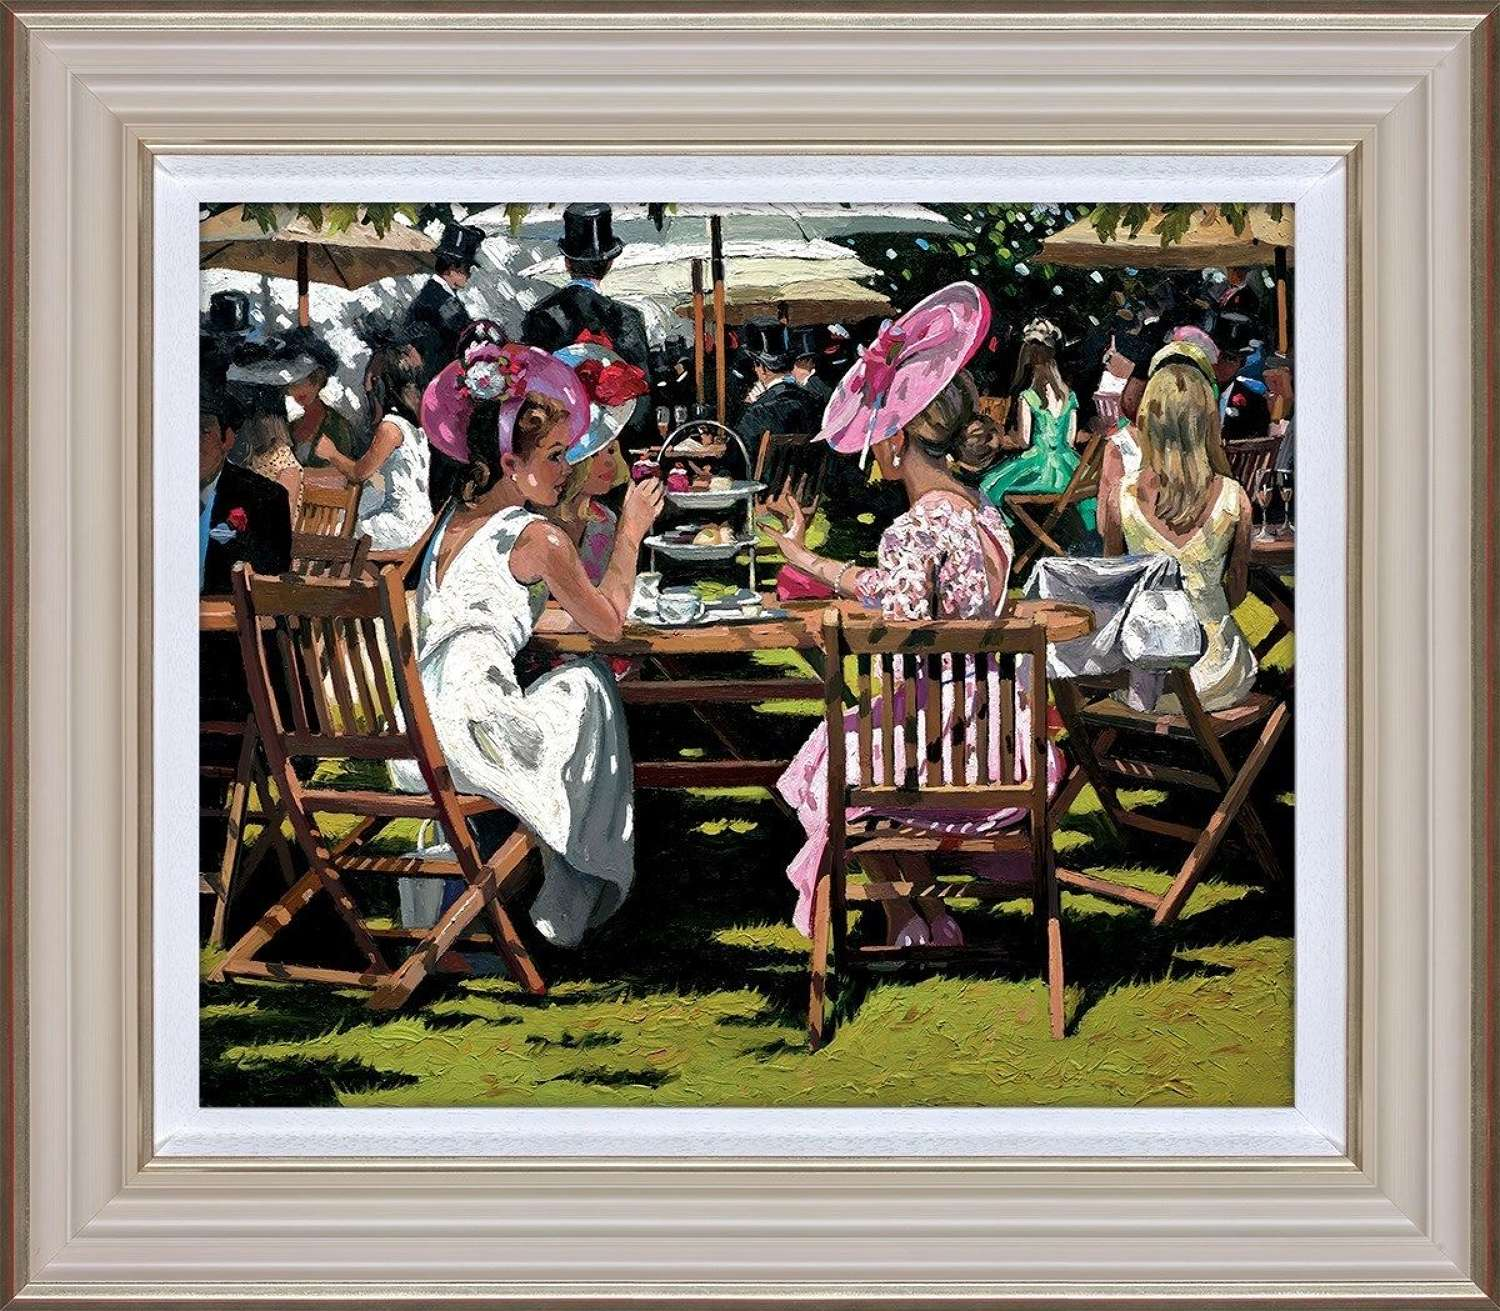 Afternoon Tea at Ascot - Framed Art Print by Sherree Valentine